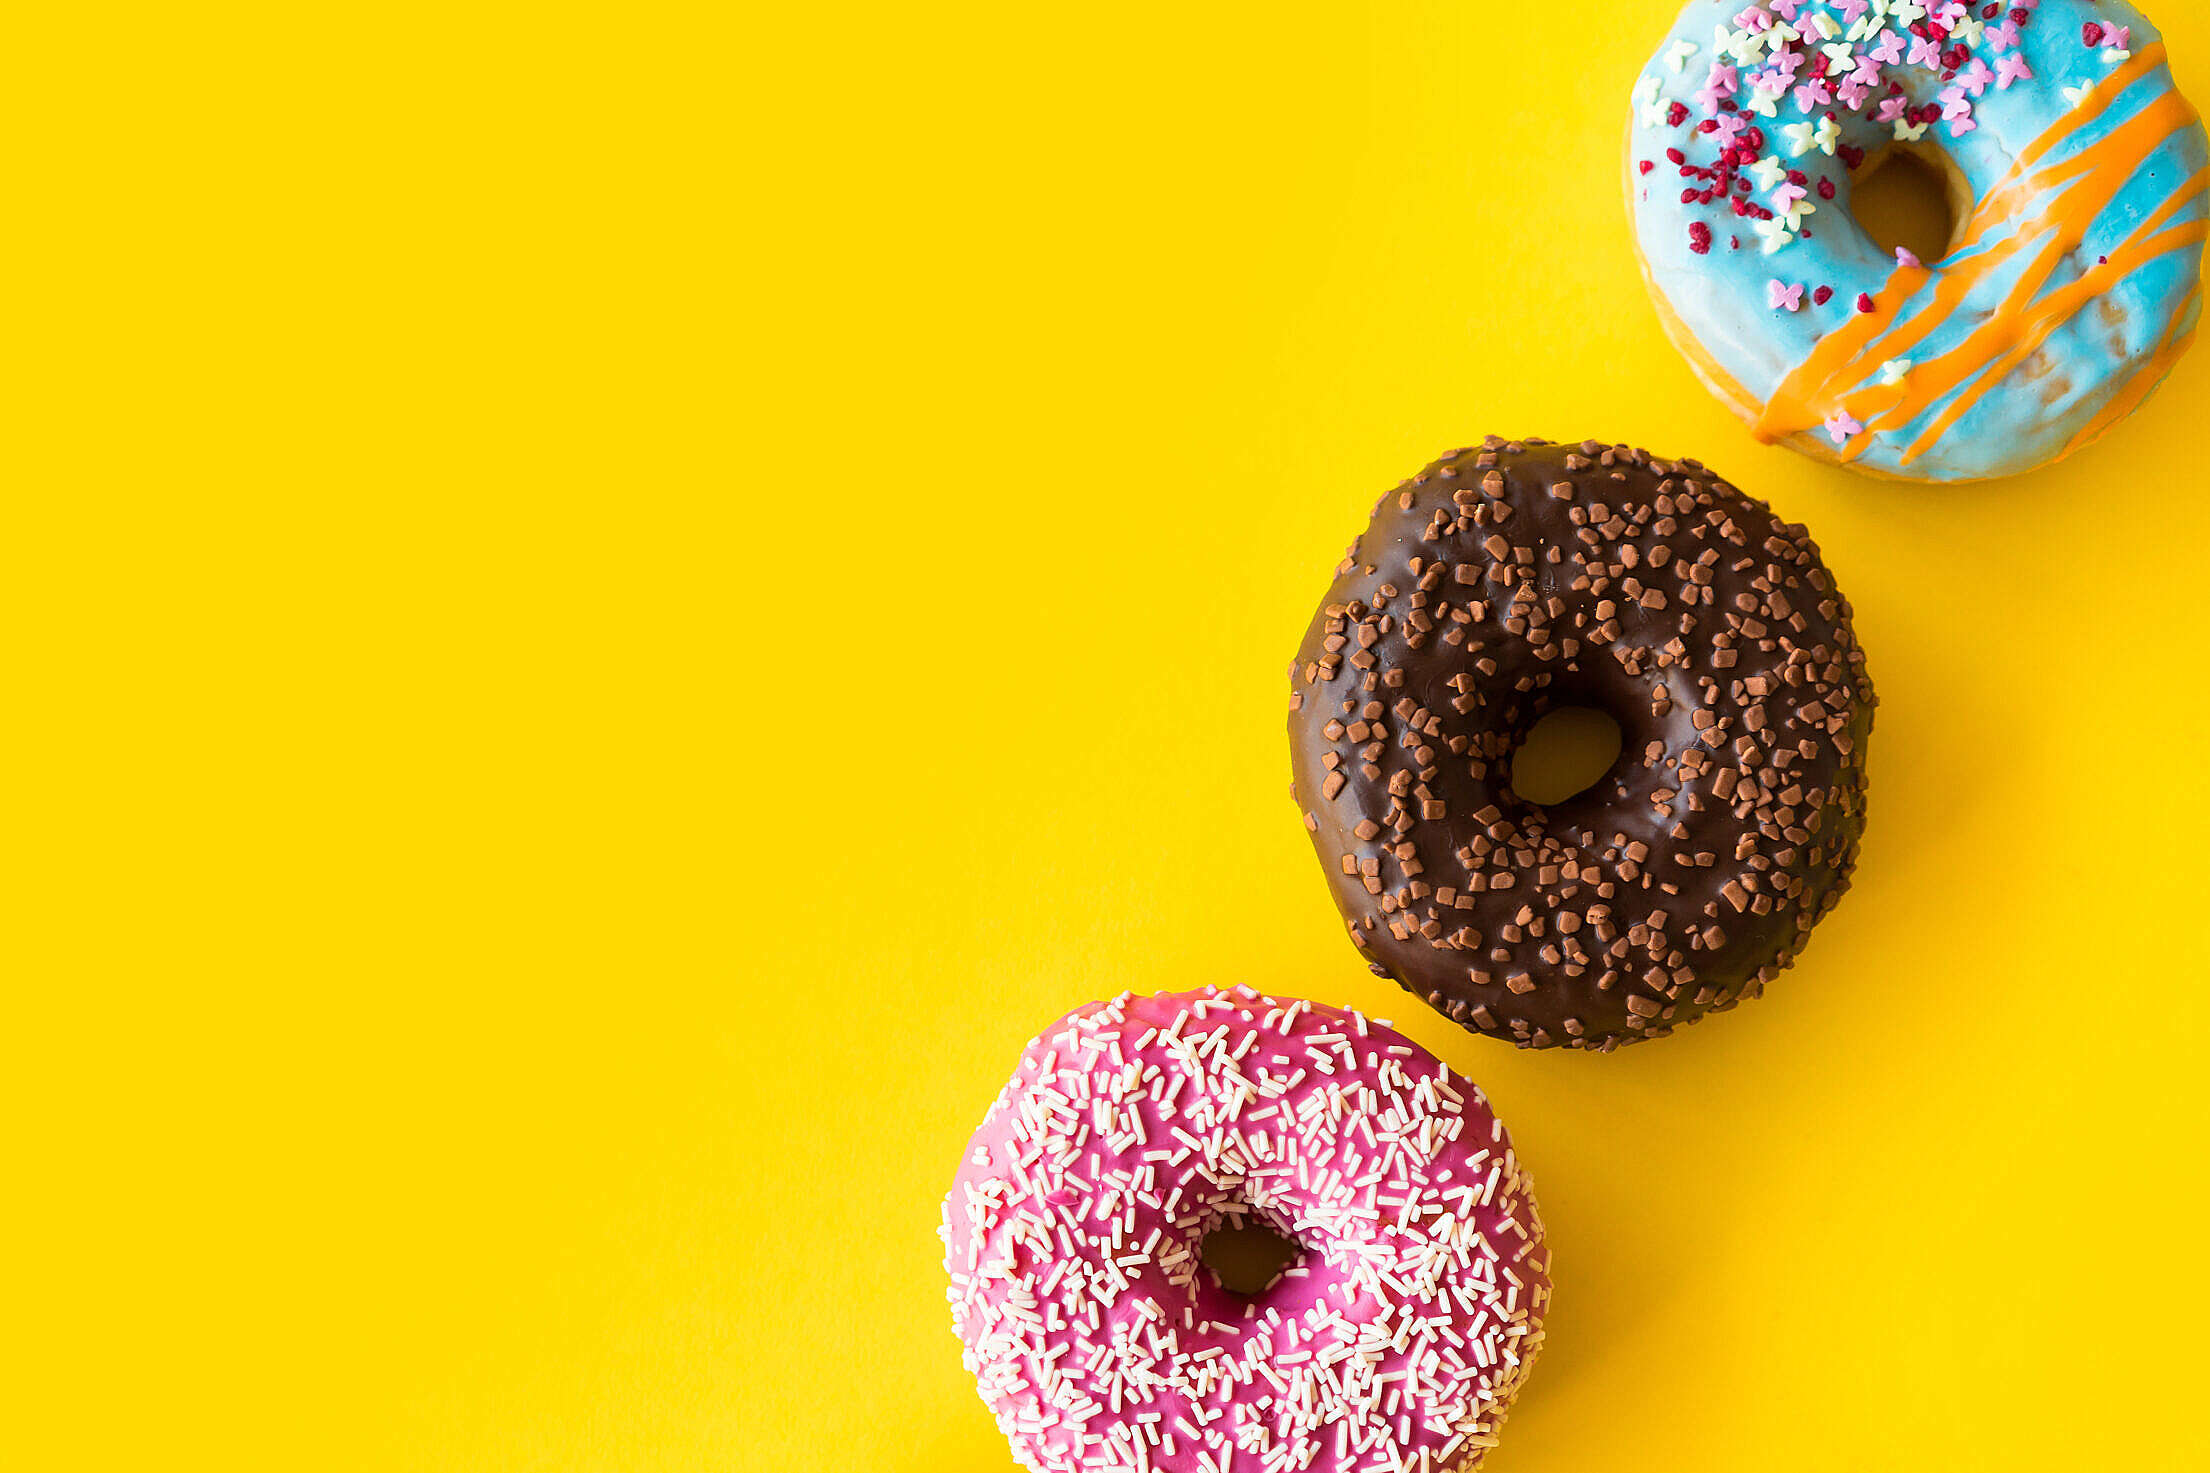 Yummy Donuts on Yellow Background Free Stock Photo